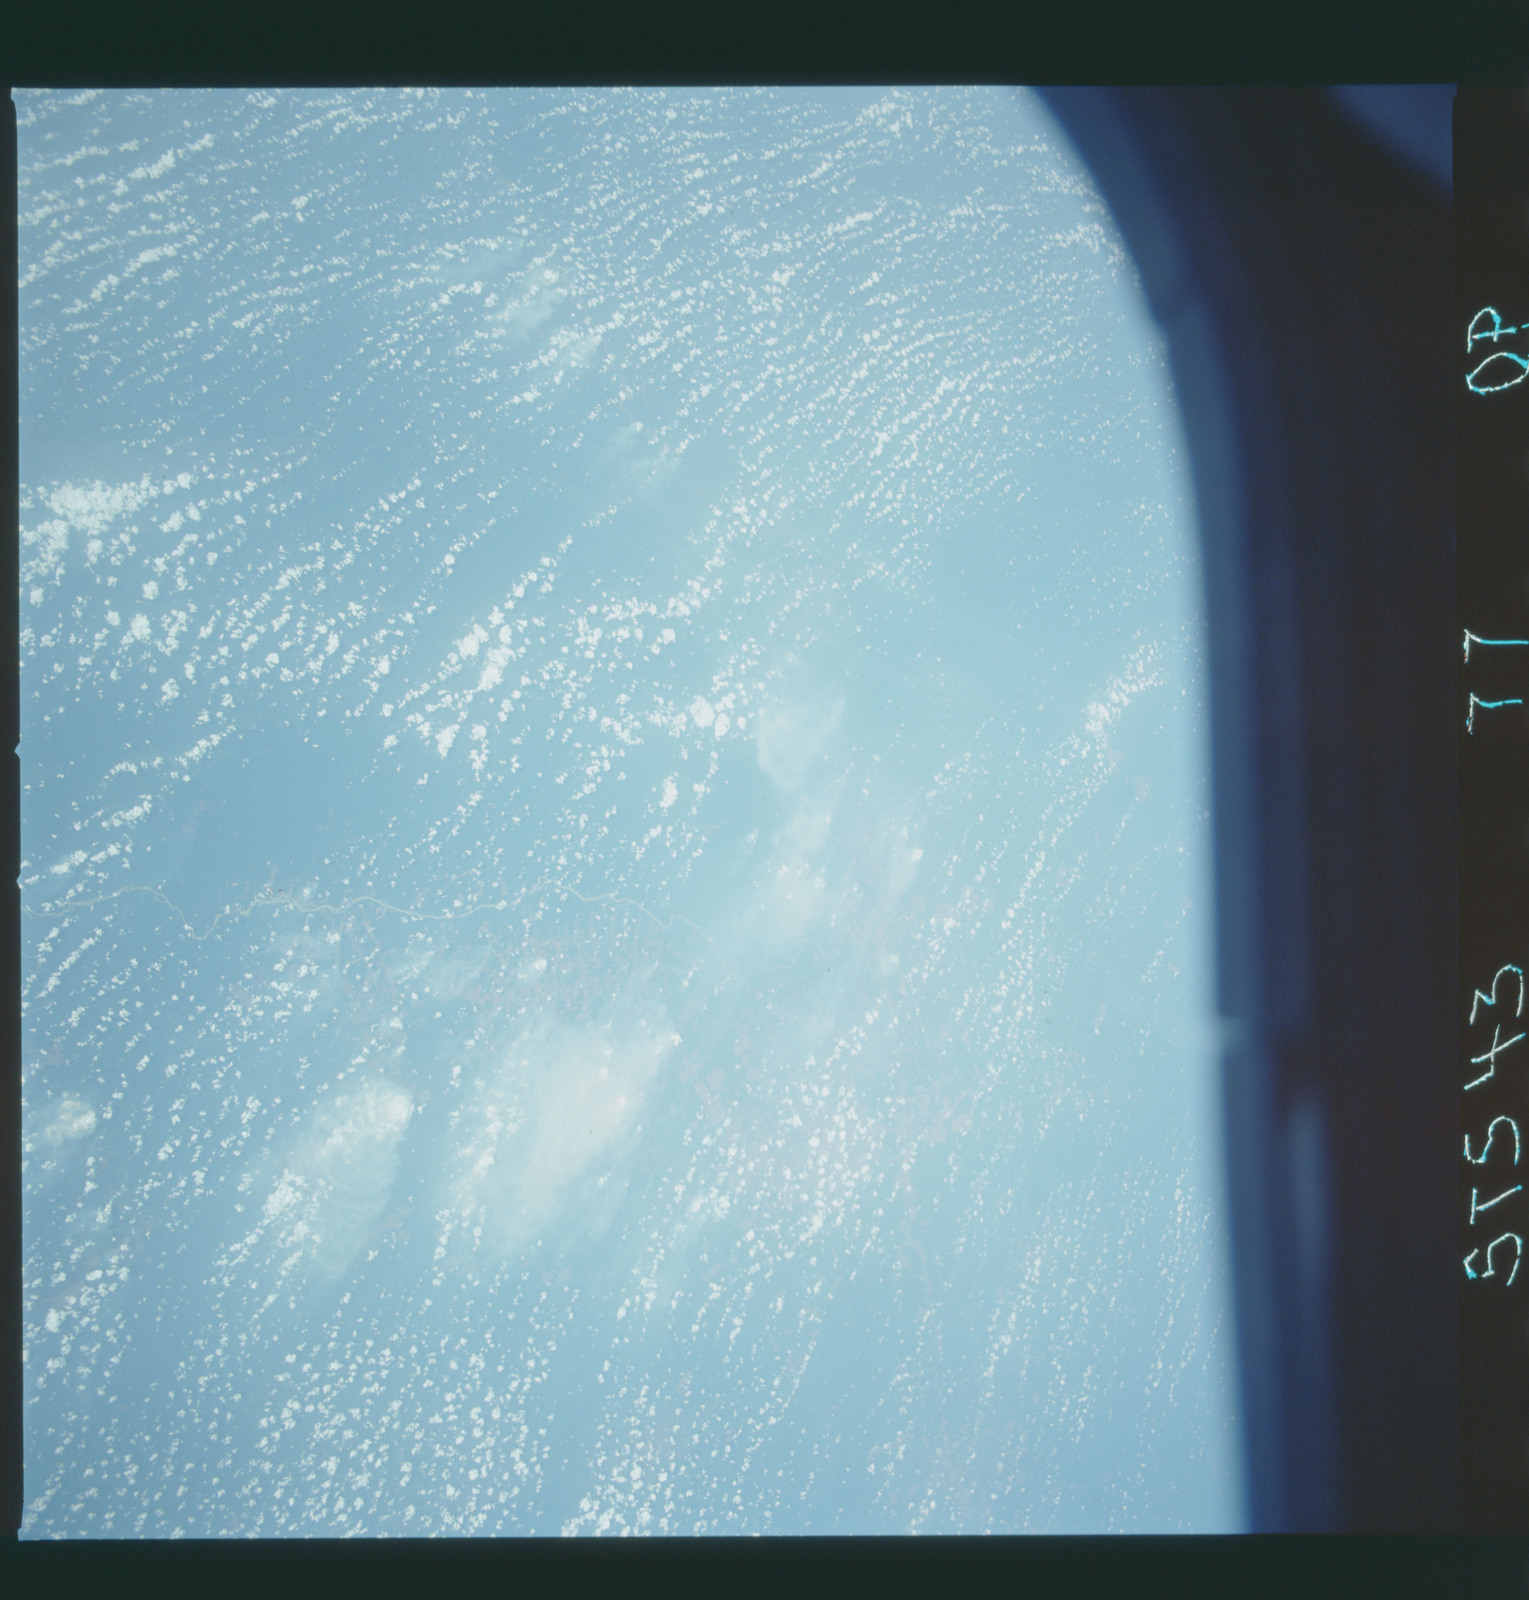 S43-77-000P - STS-043 - STS-43 earth observations